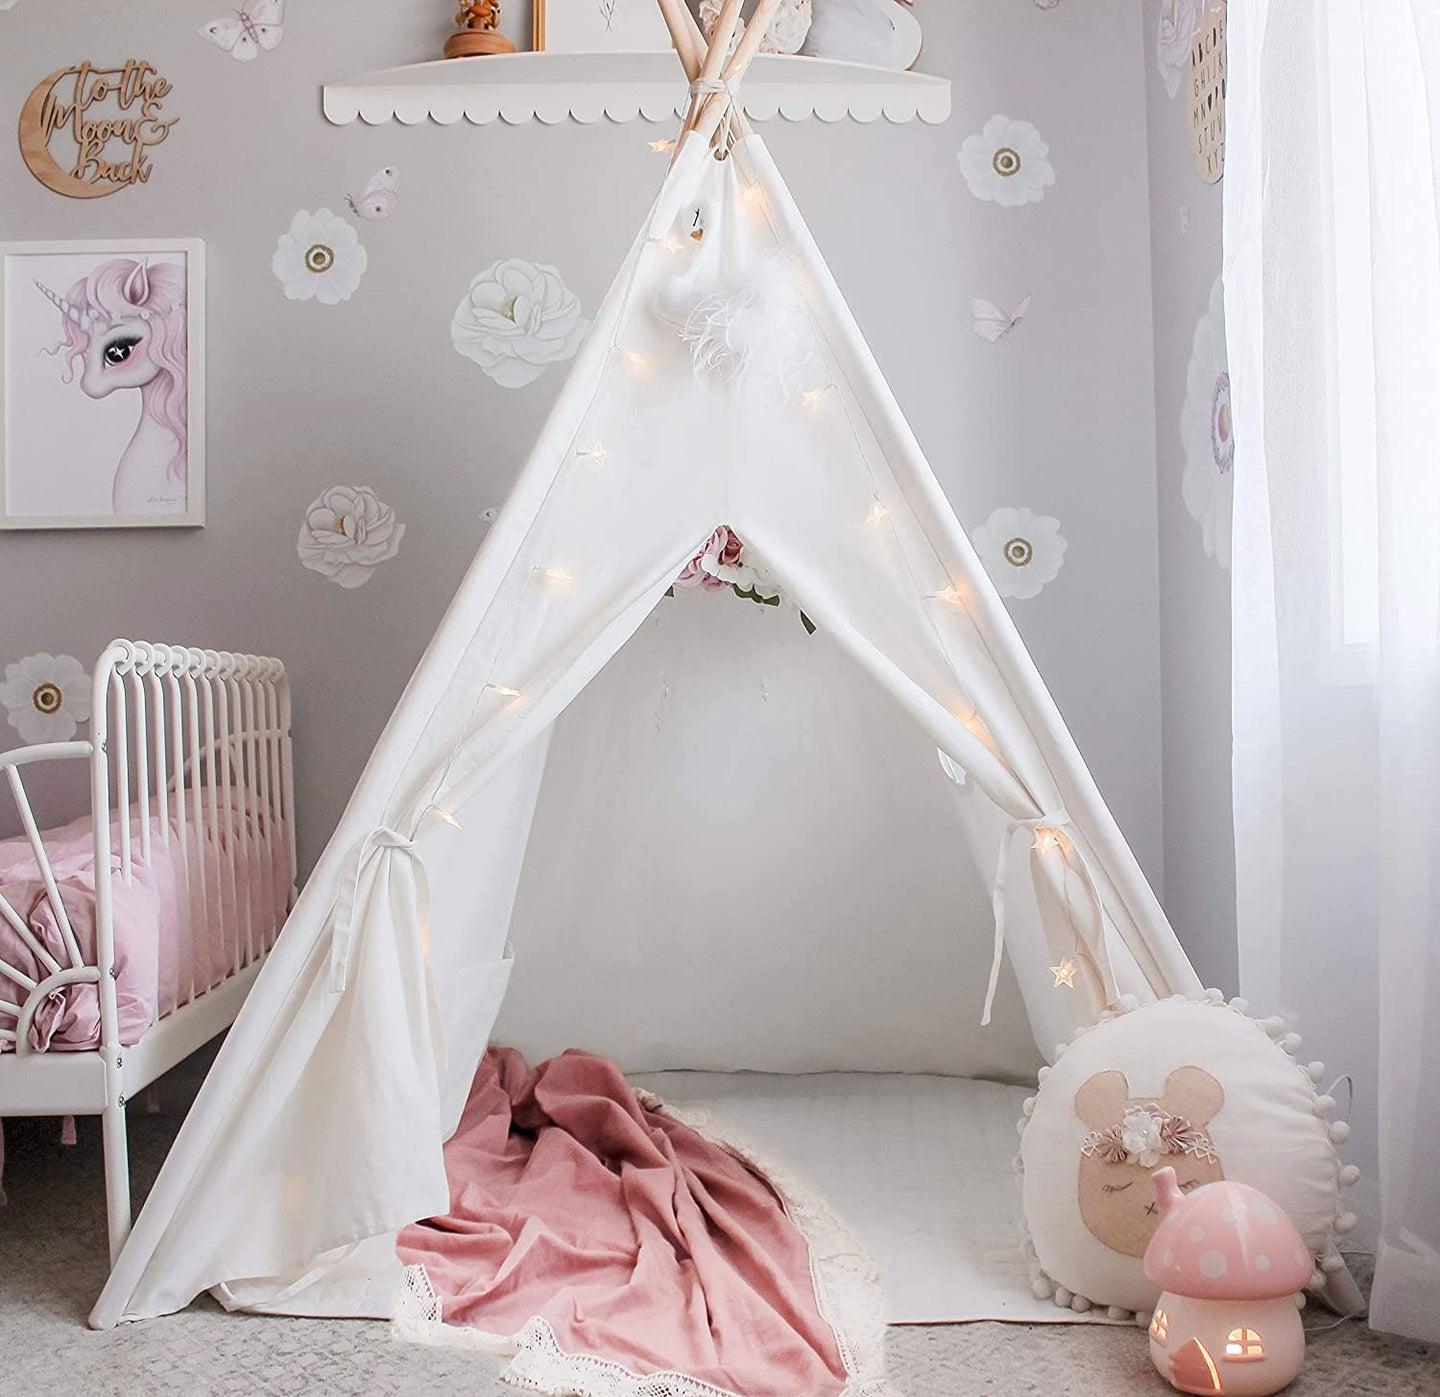 Child's bedroom tent with lights